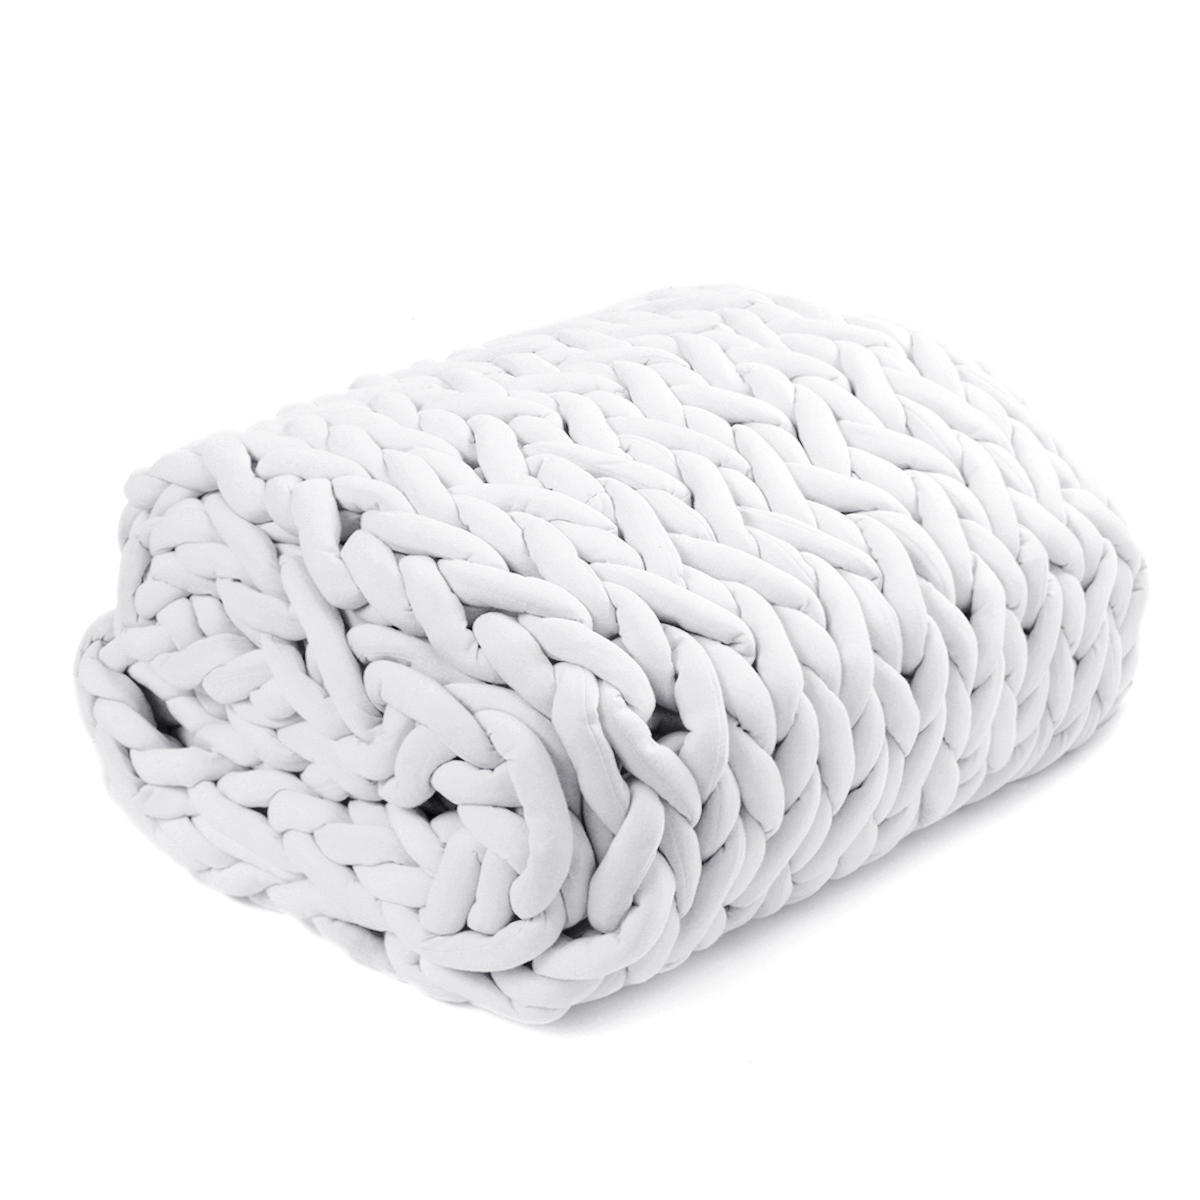 120x150cm Handmade Knitted Blanket Soft Warm Thick Line Cotton Throw Blankets - 5